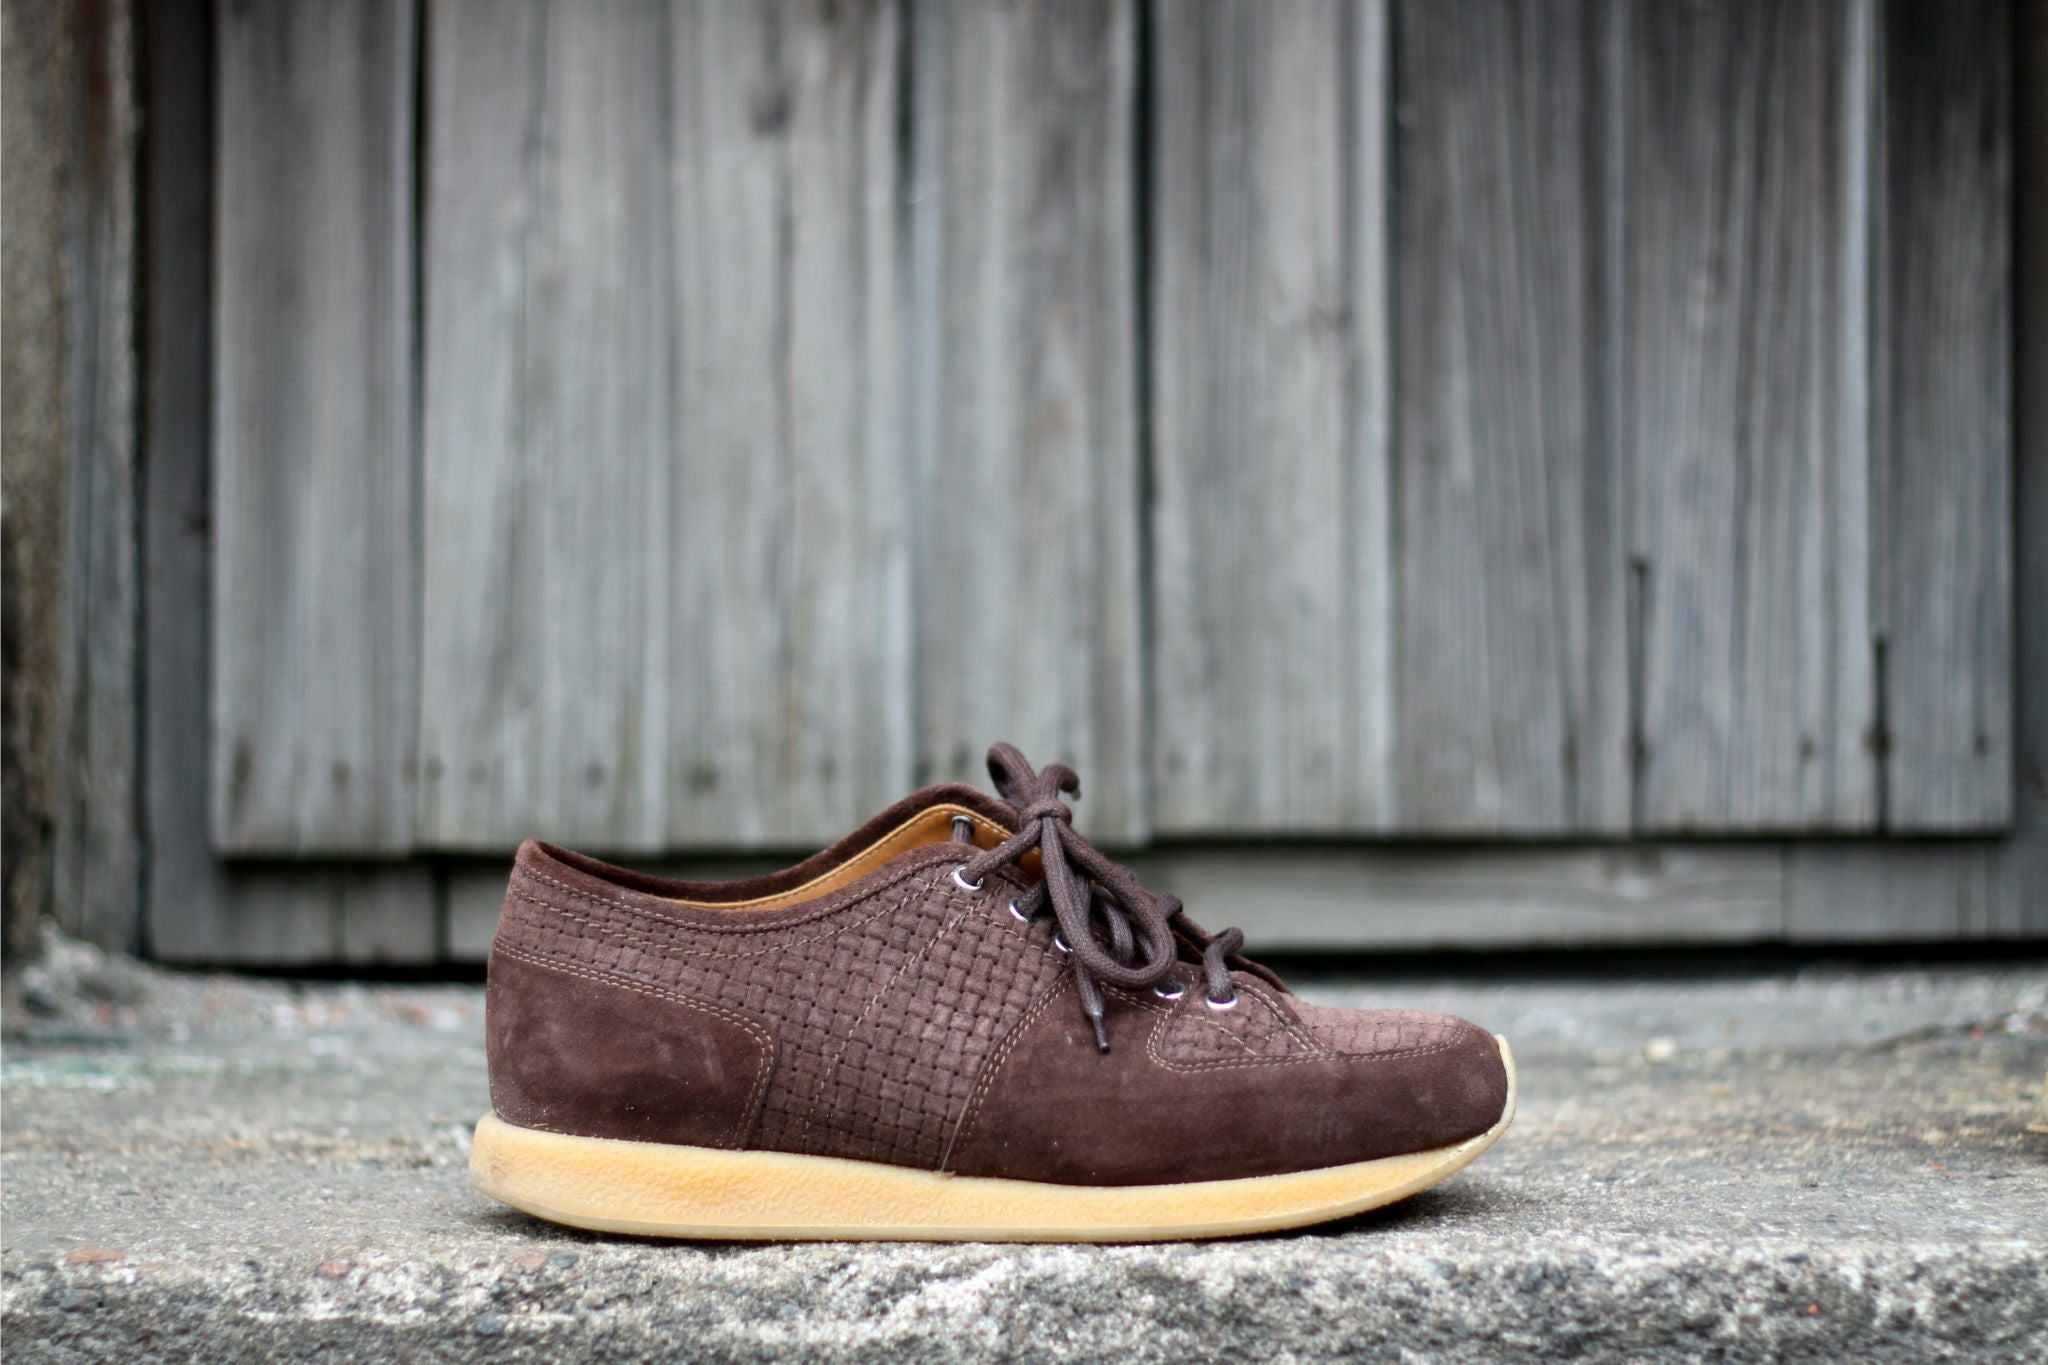 Christian Kimber x Eidos Napoli sneakers - side profile